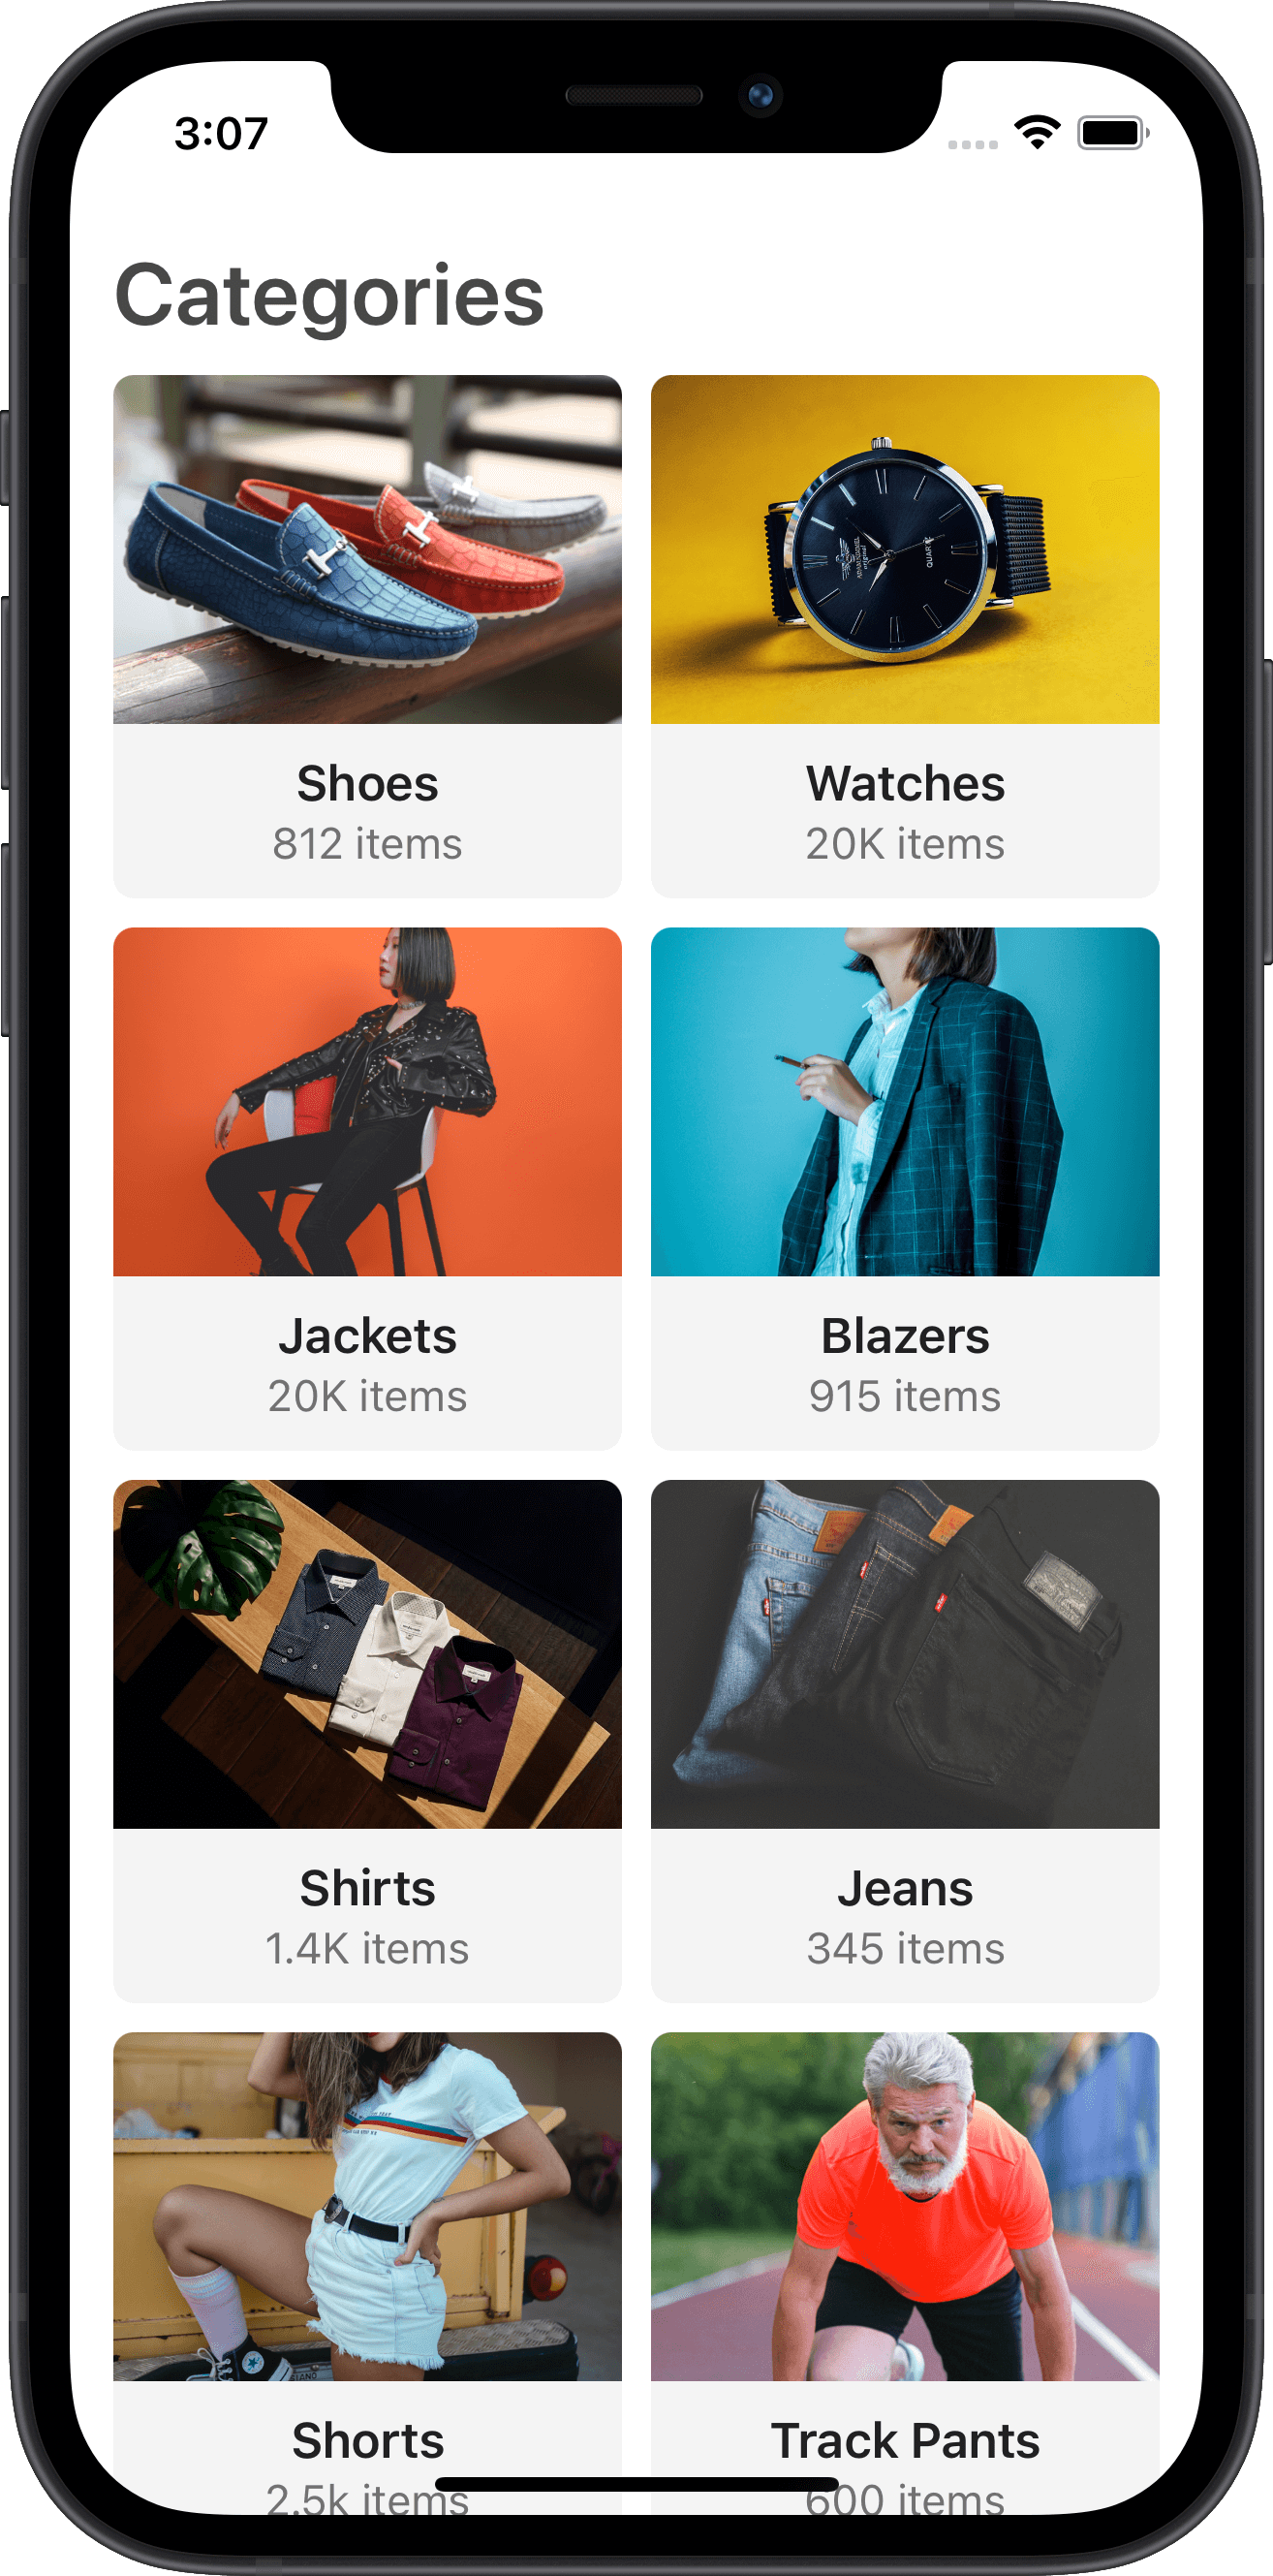 e-commerce, categories, sneakers, products, nike